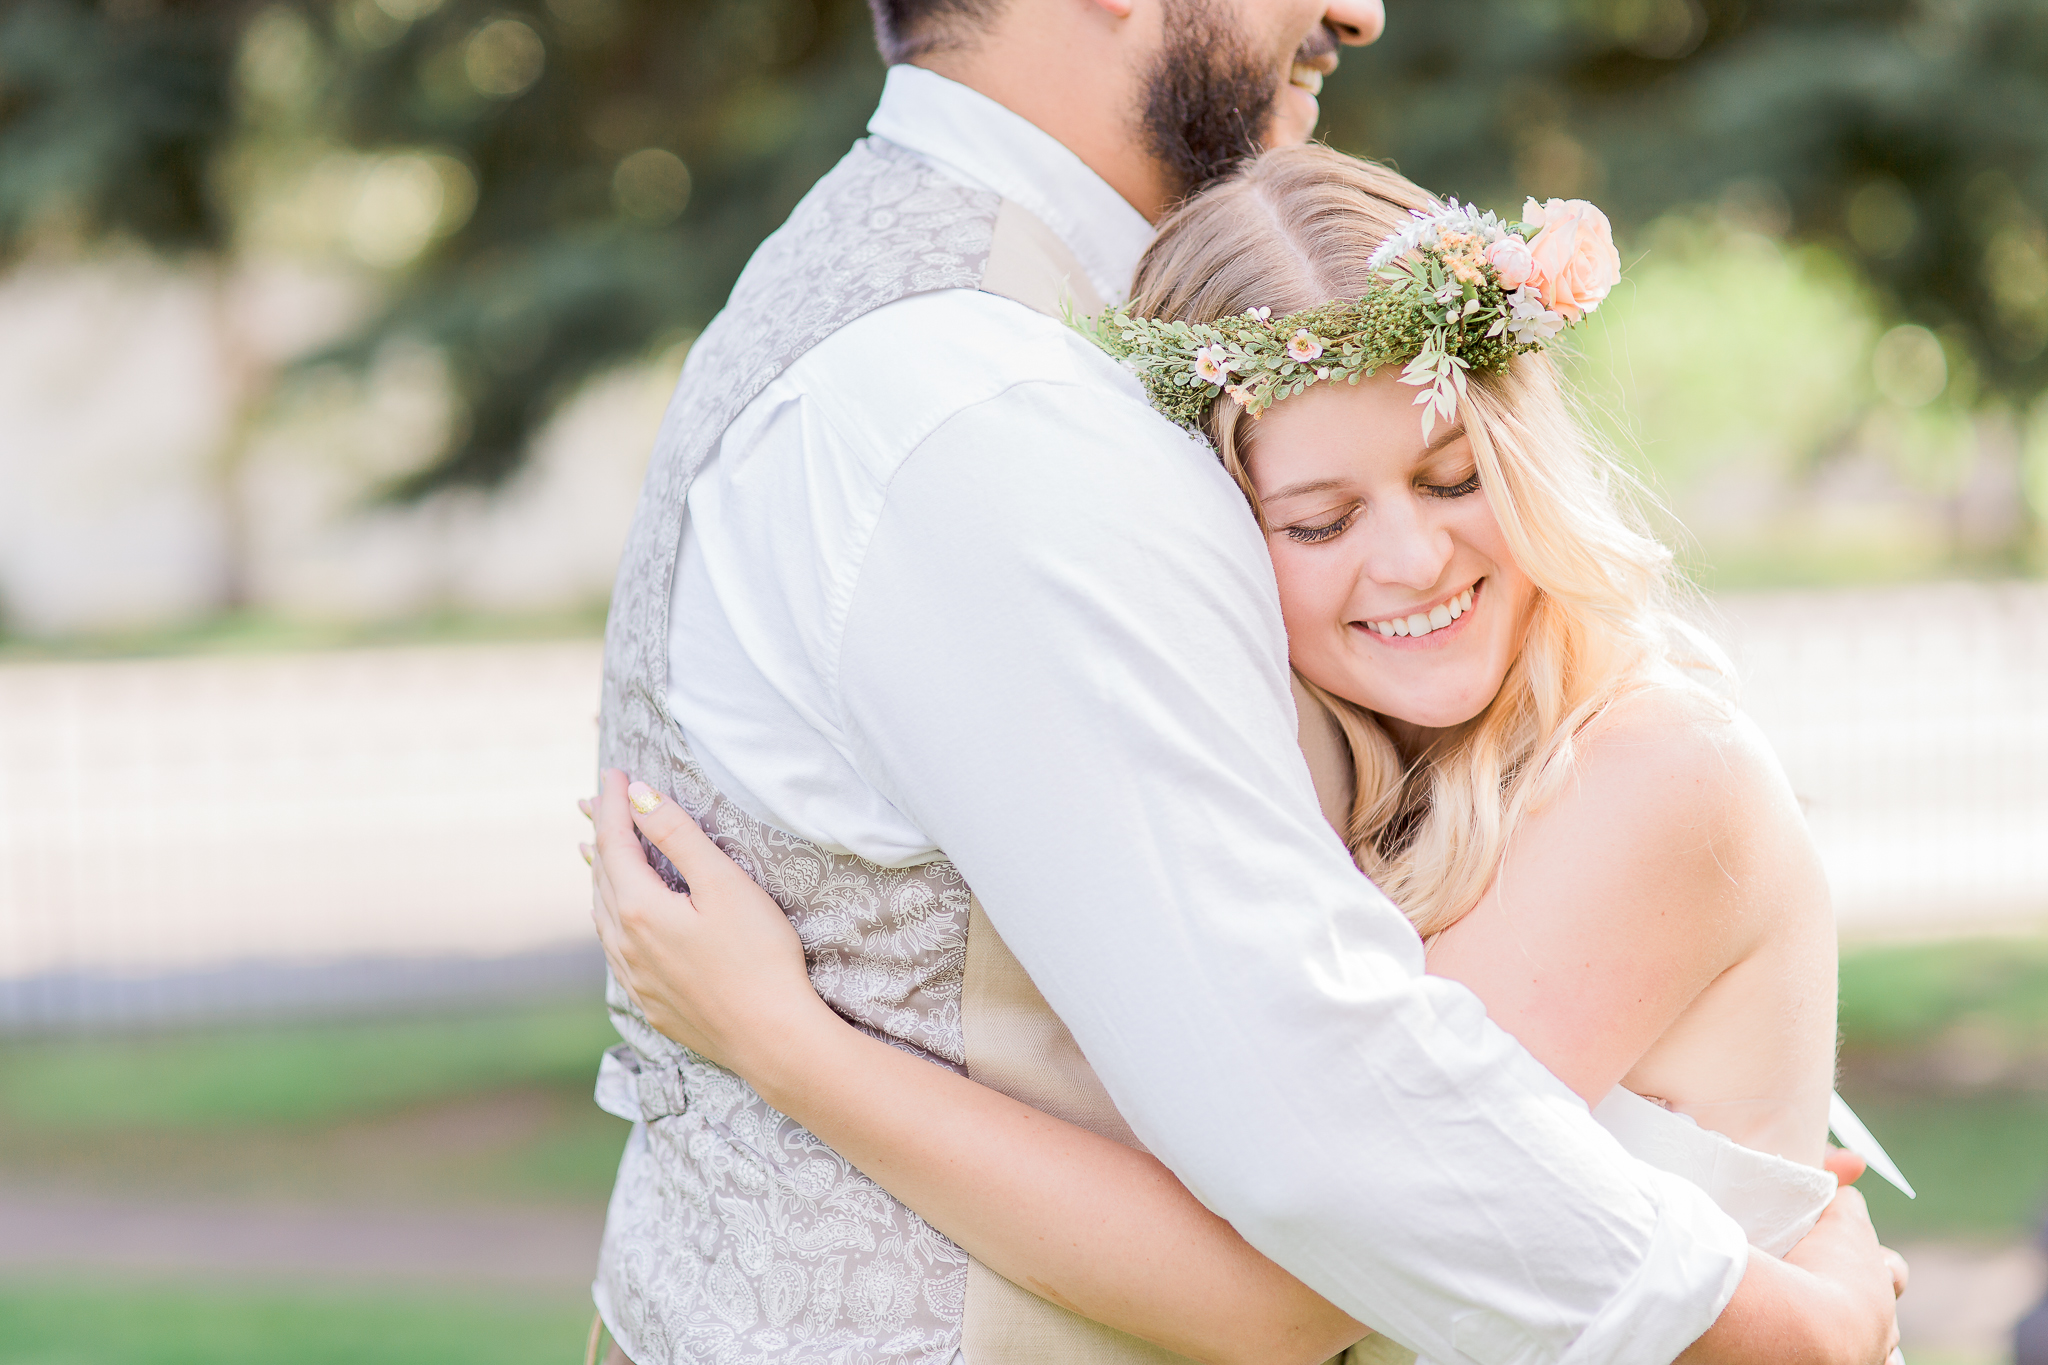 Amanda & Devin's summer garden wedding was nothing short of magical!  The Ivinson Mansion provided the perfect venue for their wedding, the girls were barefoot, the gents all in tans and cream colors... I could have sworn I was transported to the shire!  https://www.wyomingweddingphotographer.com/megan-lee-photography/amanda-devin-ivinson-mansion-wedding-in-laramie-wy